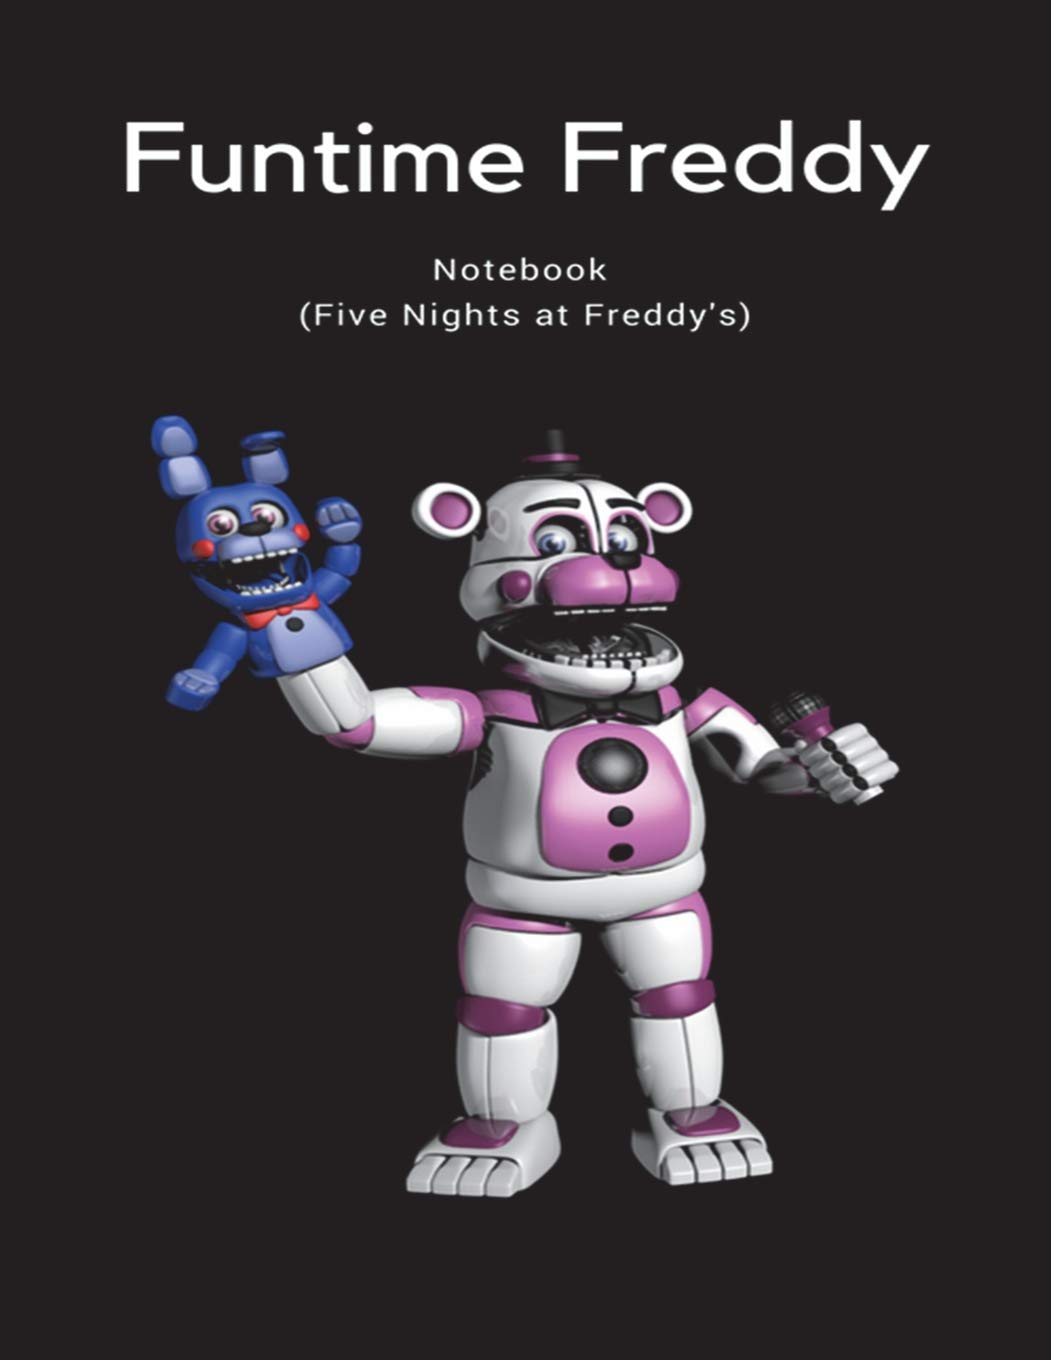 Amazon com: Funtime Freddy Notebook (Five Nights at Freddy's